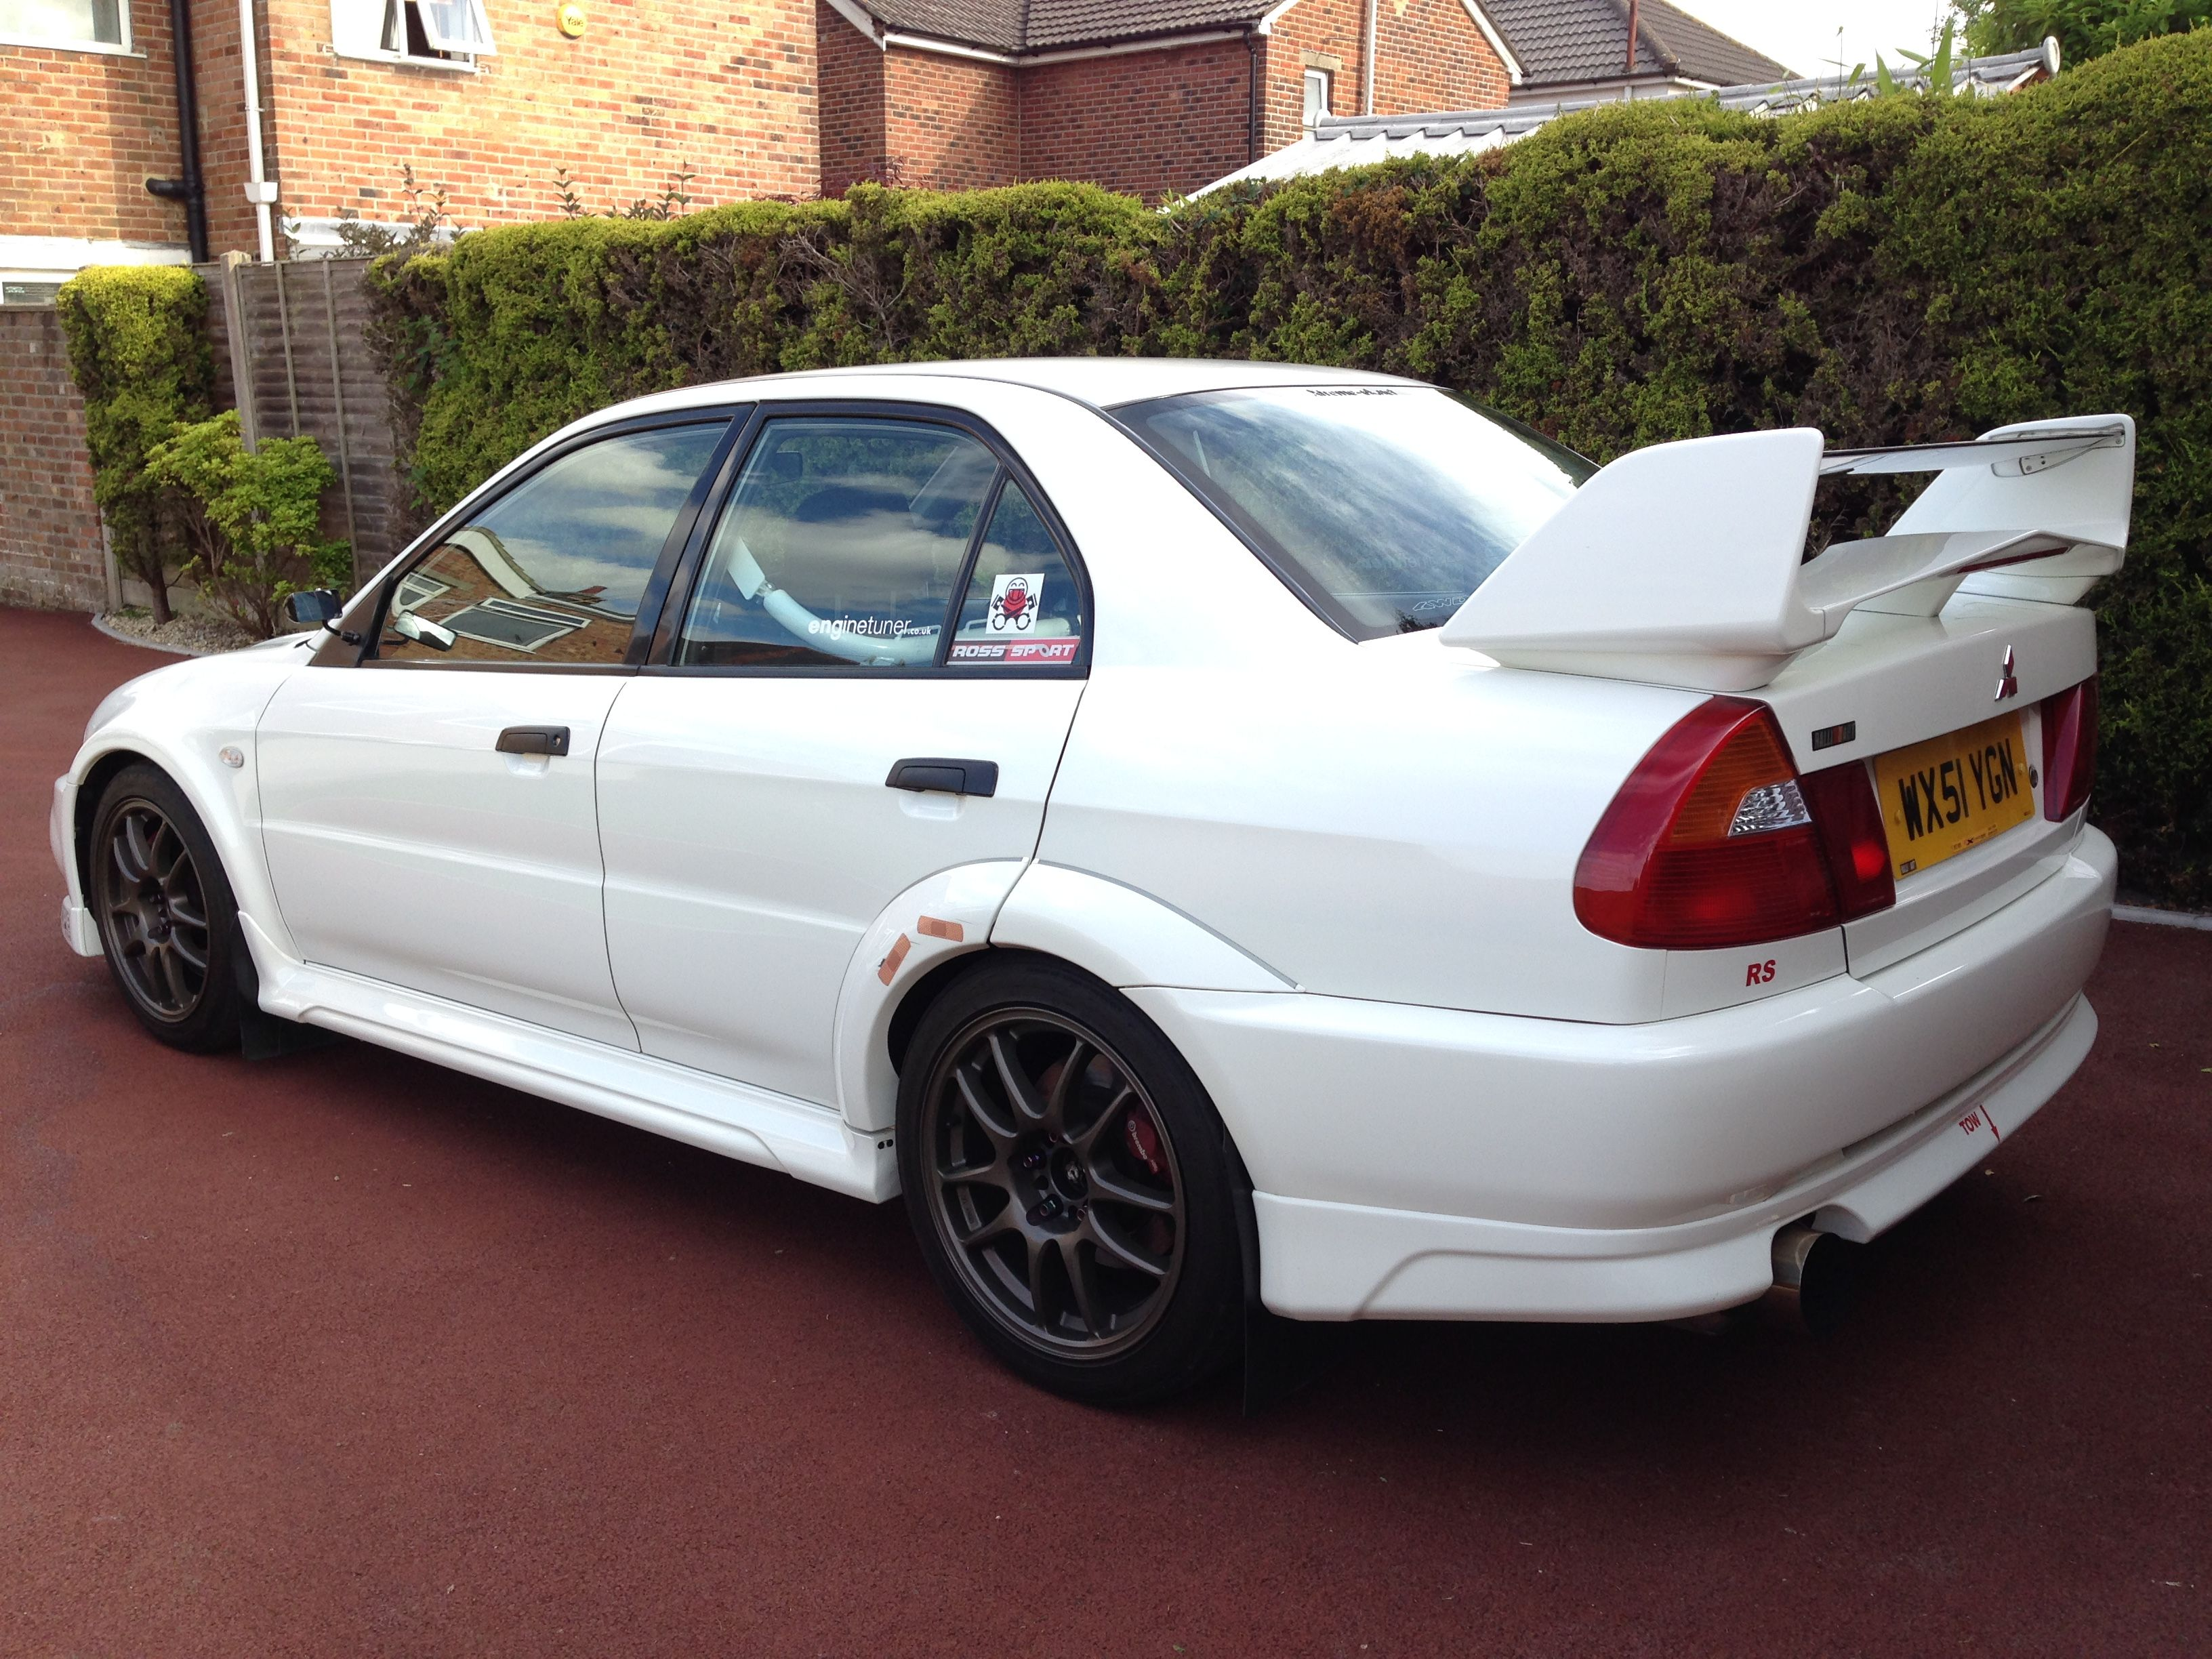 Pin by Christopher Grant on My car Evo 6 Mitsubishi